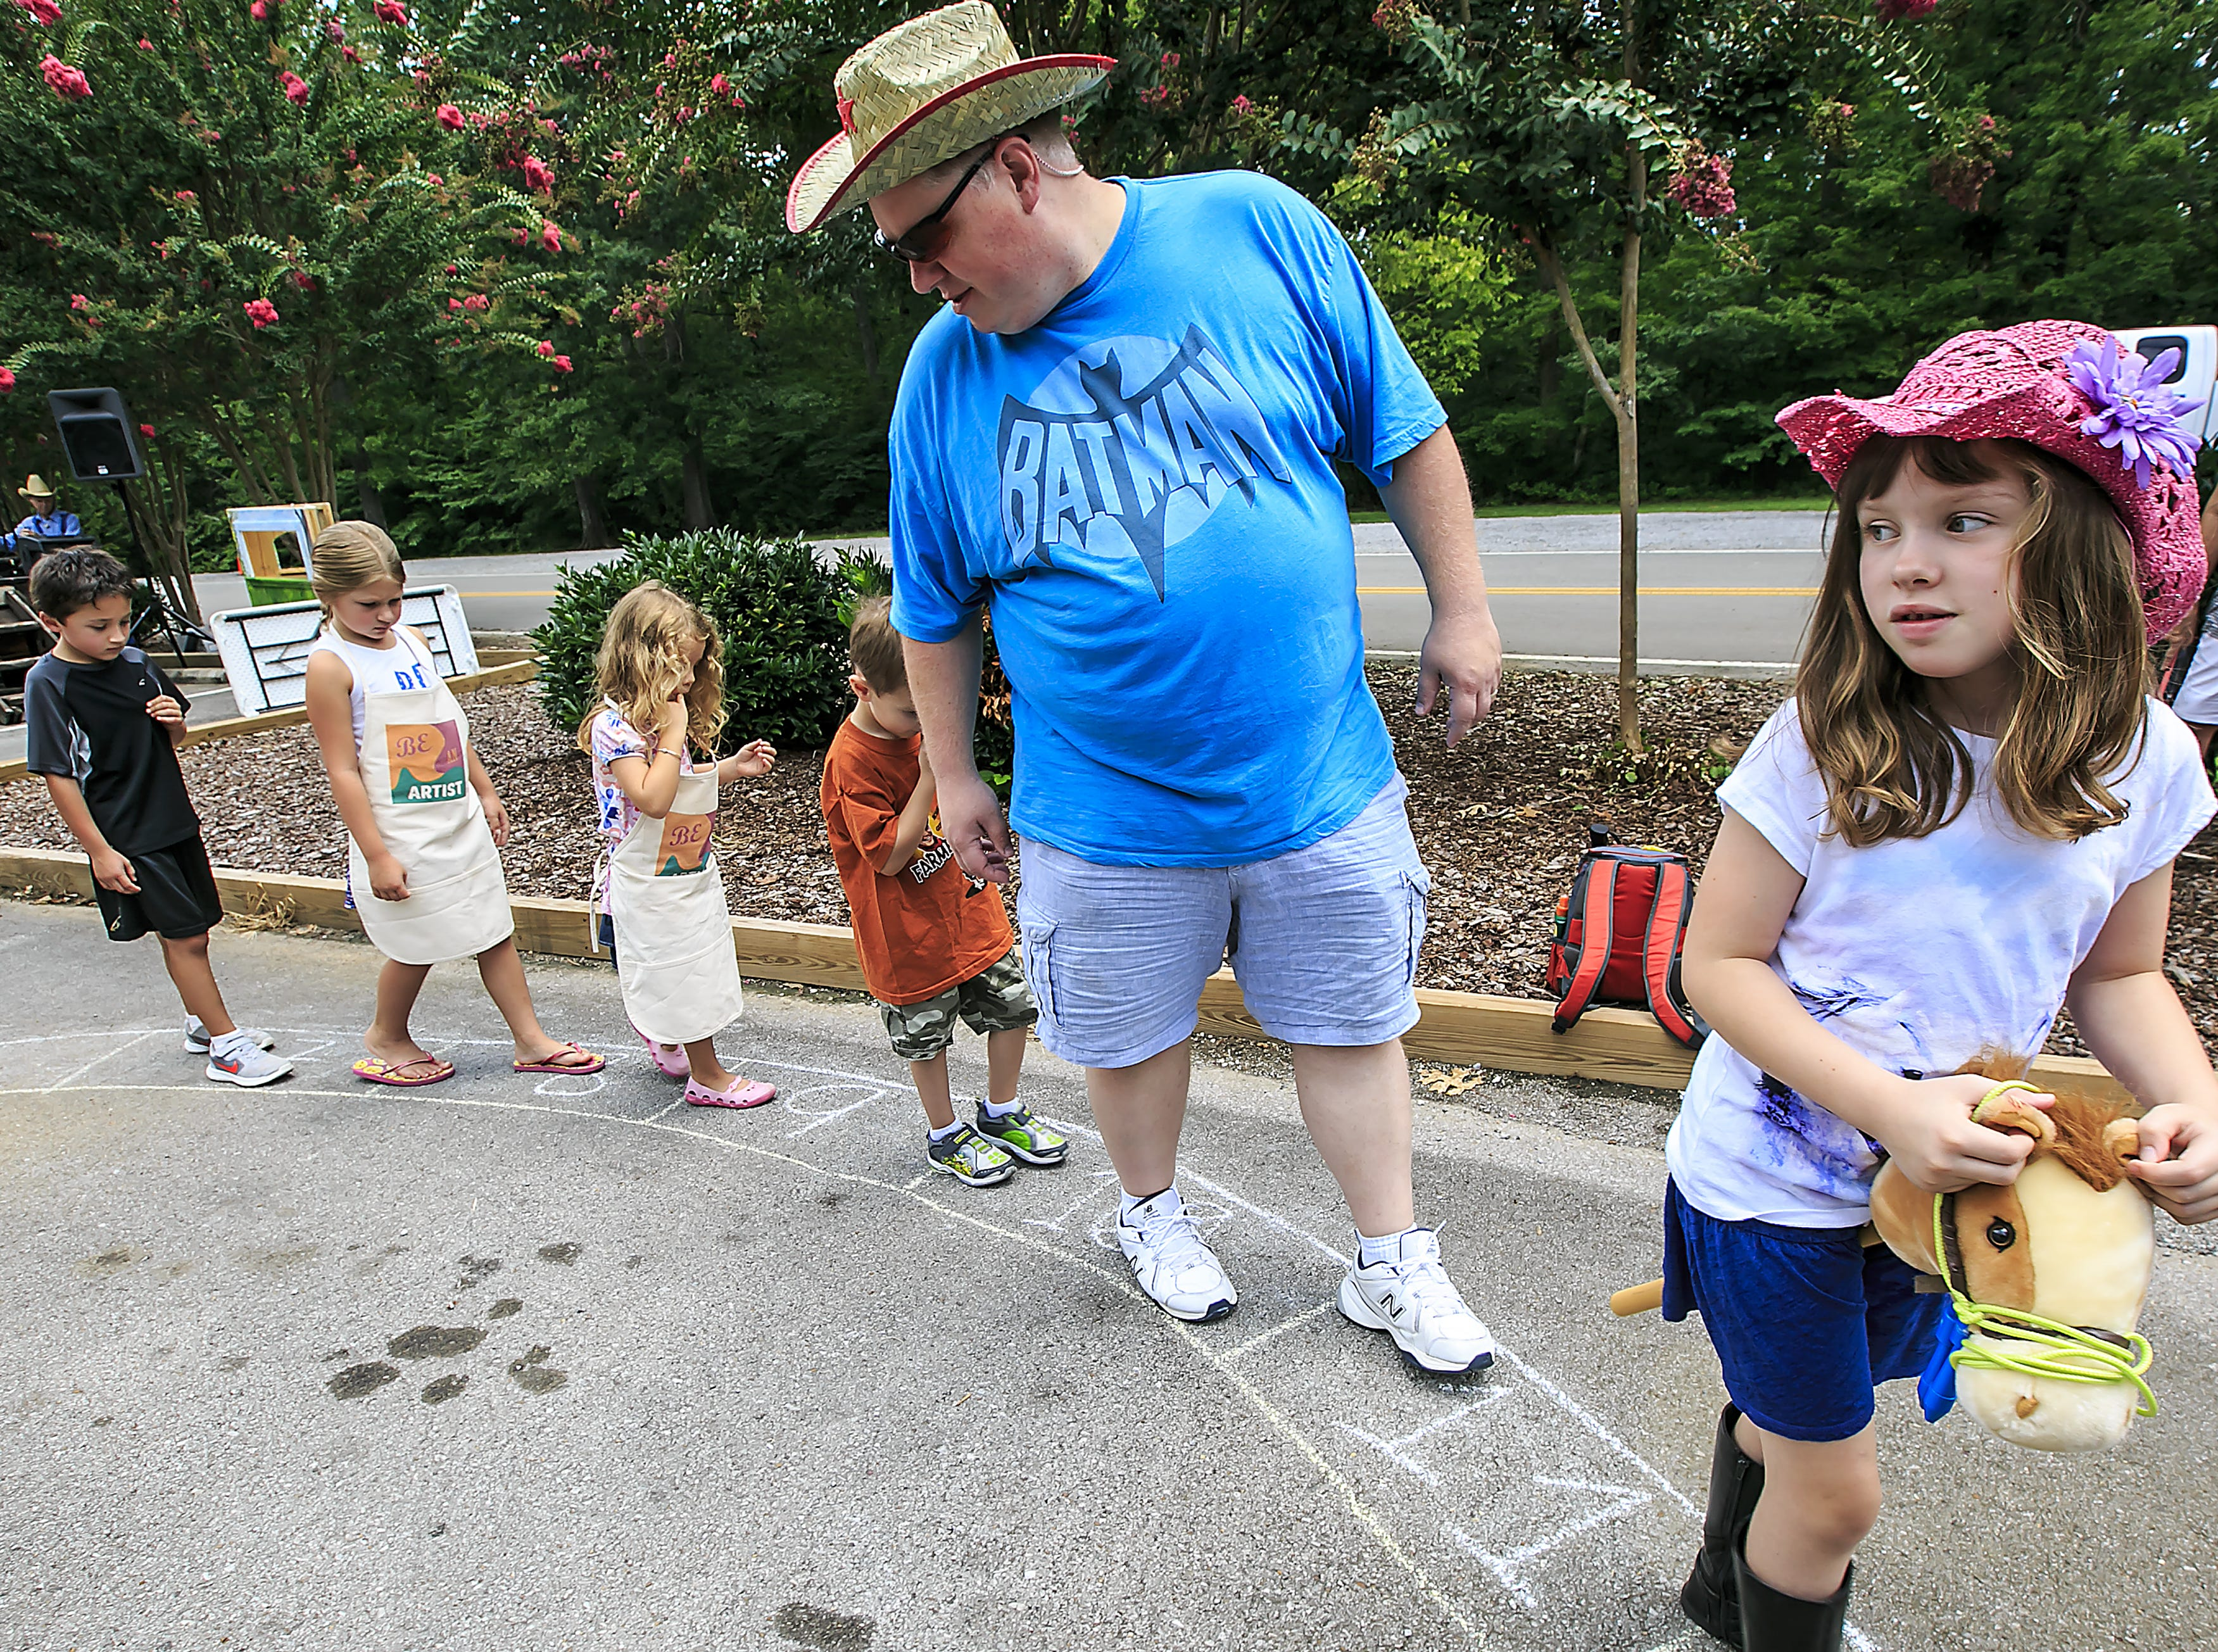 Gracie Sanders, right, is dressed for Wild Arts Day has she is followed by her father Keith and others during a T-shirt walk (similar to a cake walk) at Wild Arts Day at the Wilderness Station held at Barfield Crescent Park.